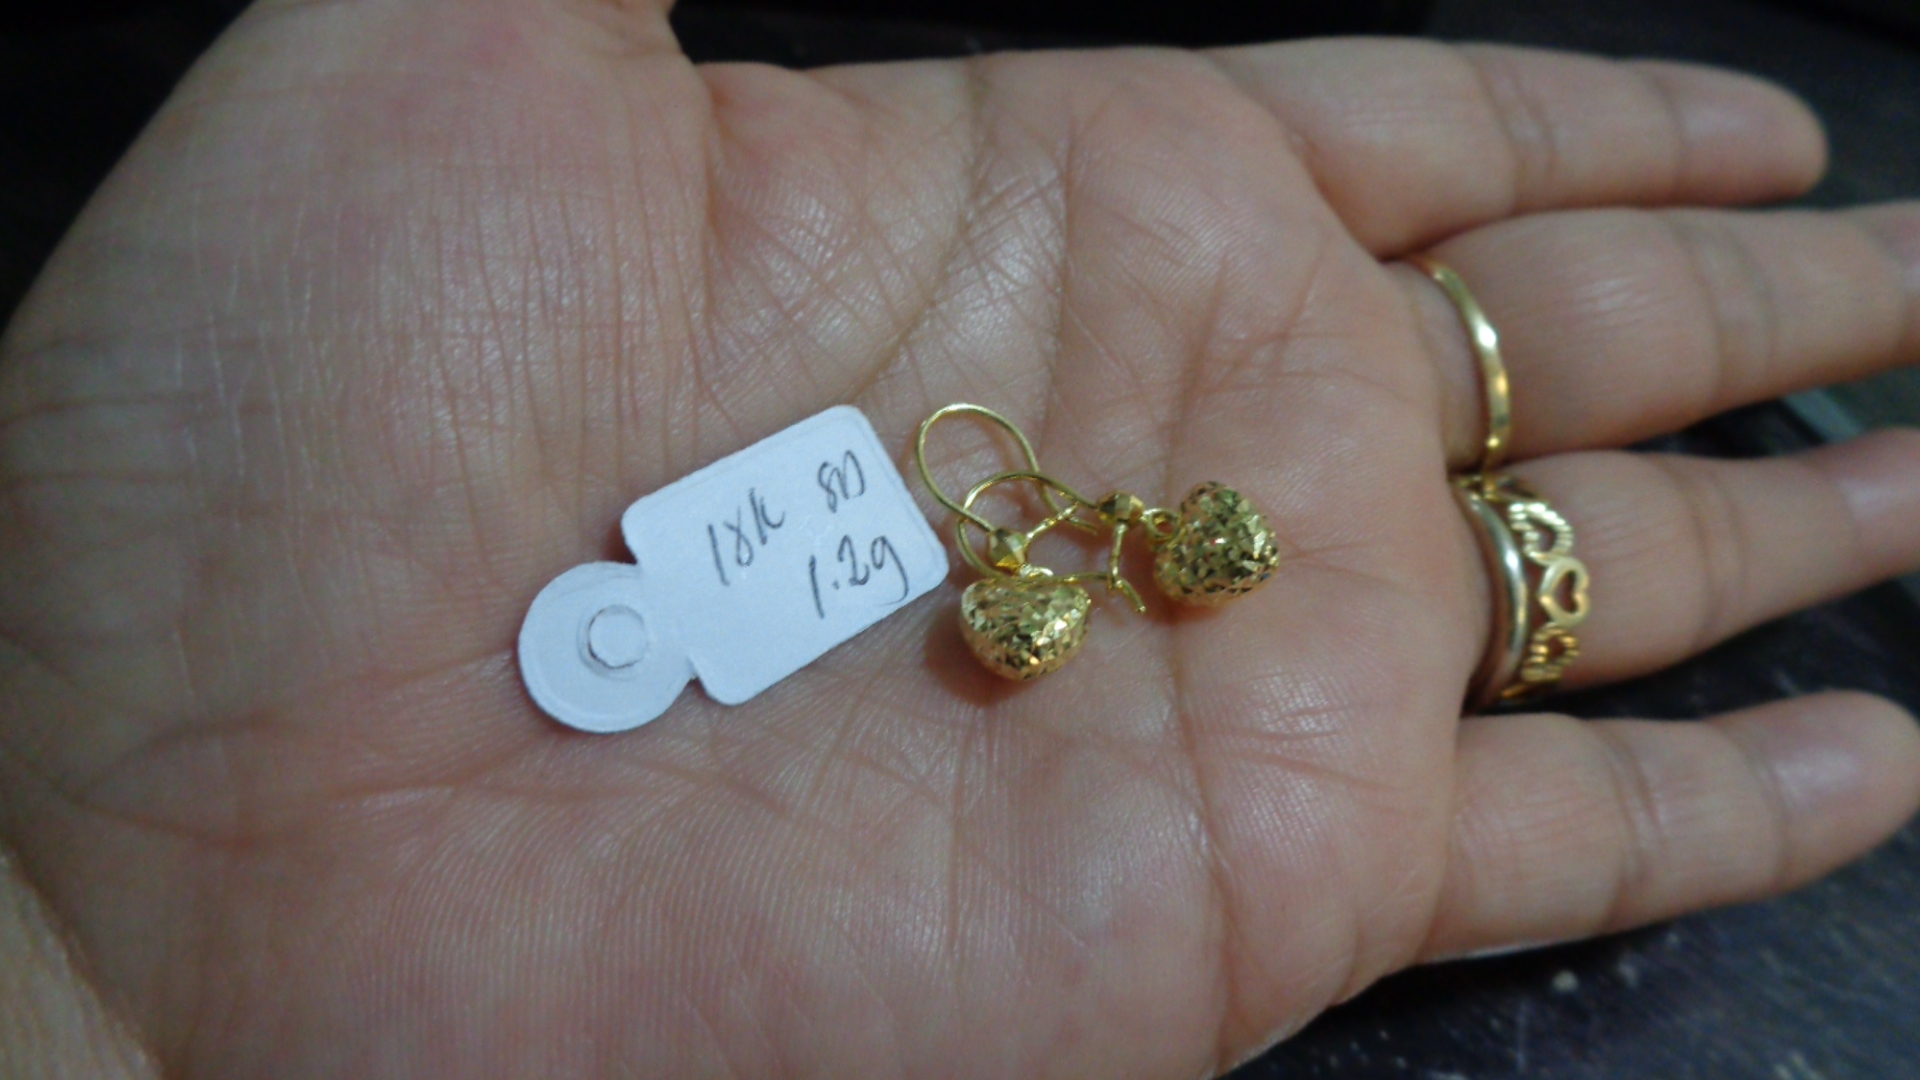 GOLD Philippines: GOLD price list - Necklaces, Rings ...